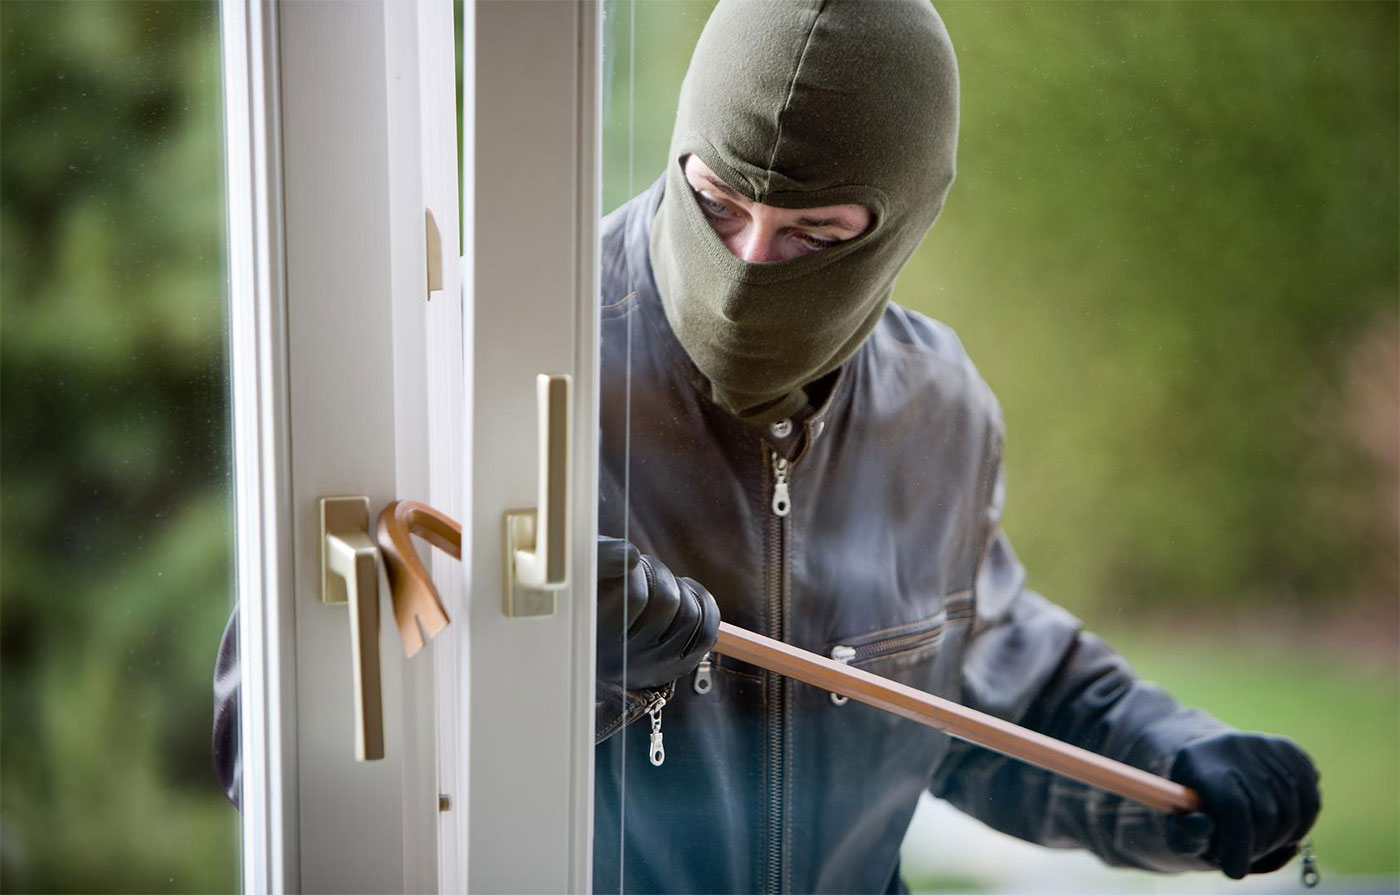 Finding a Trusted Locksmith Near You - 5 Steps to Take